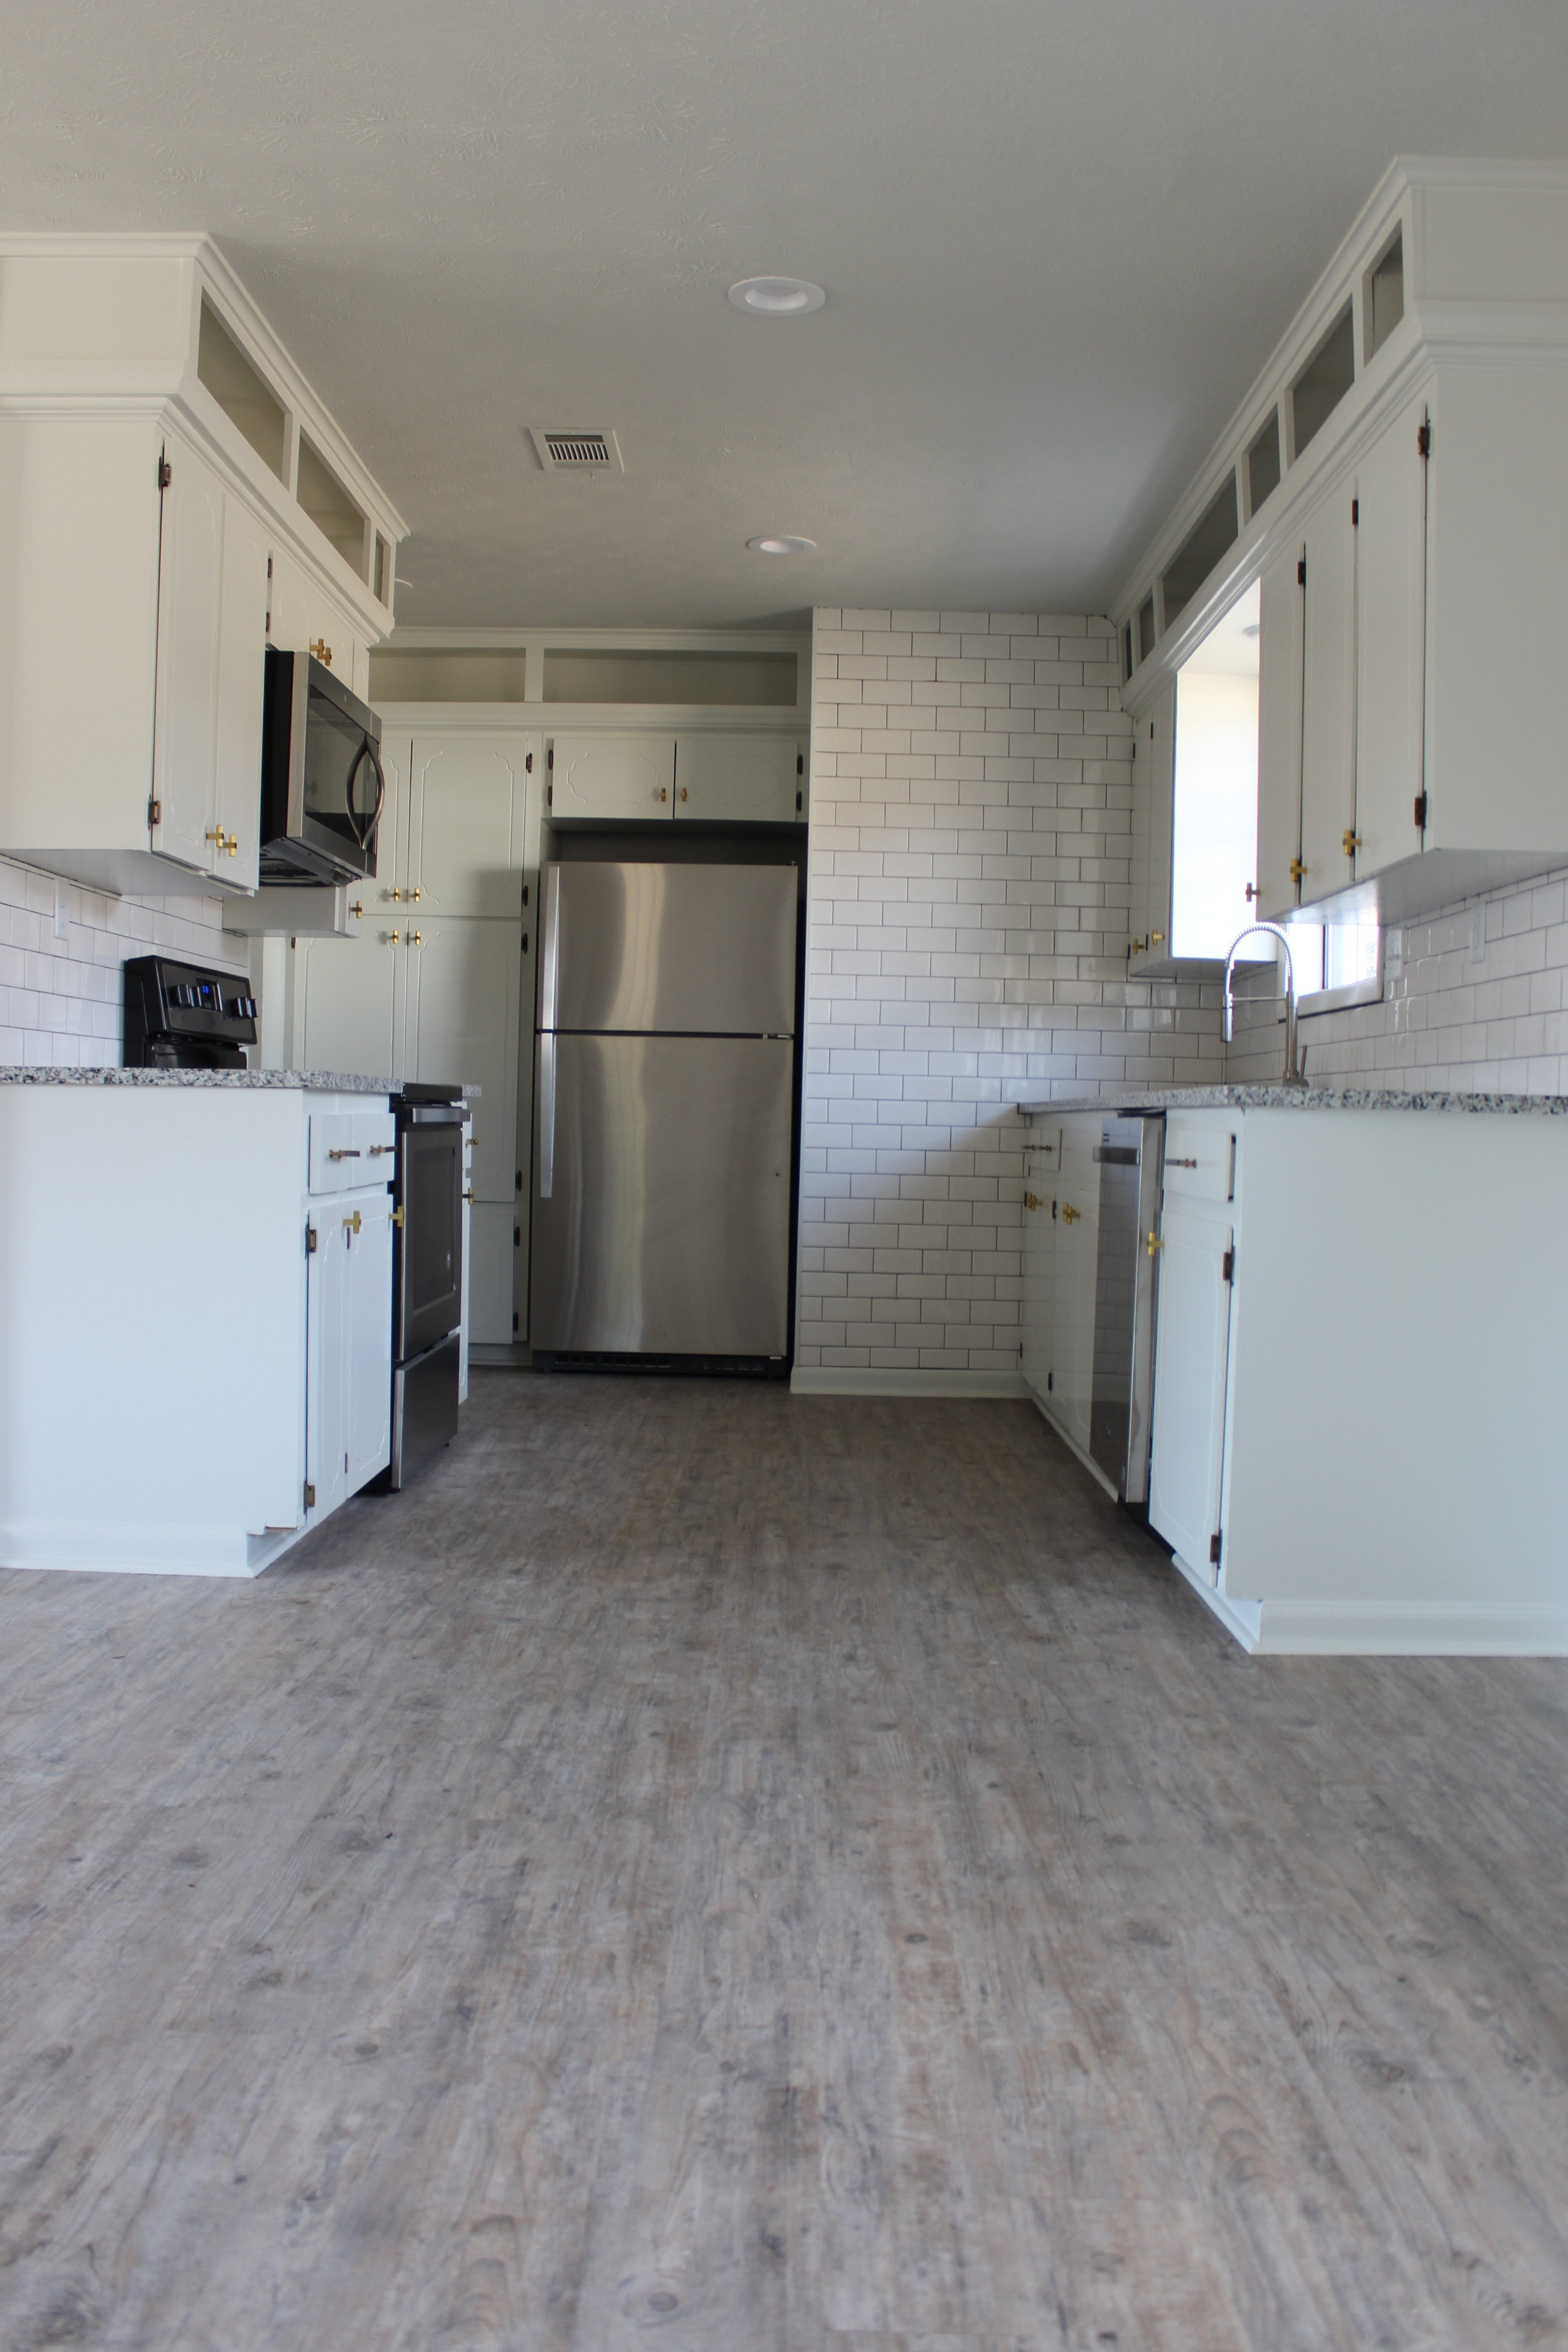 zimmerman_home_flip_house_after_picture_southern_arkansas_white_kitchen.JPG